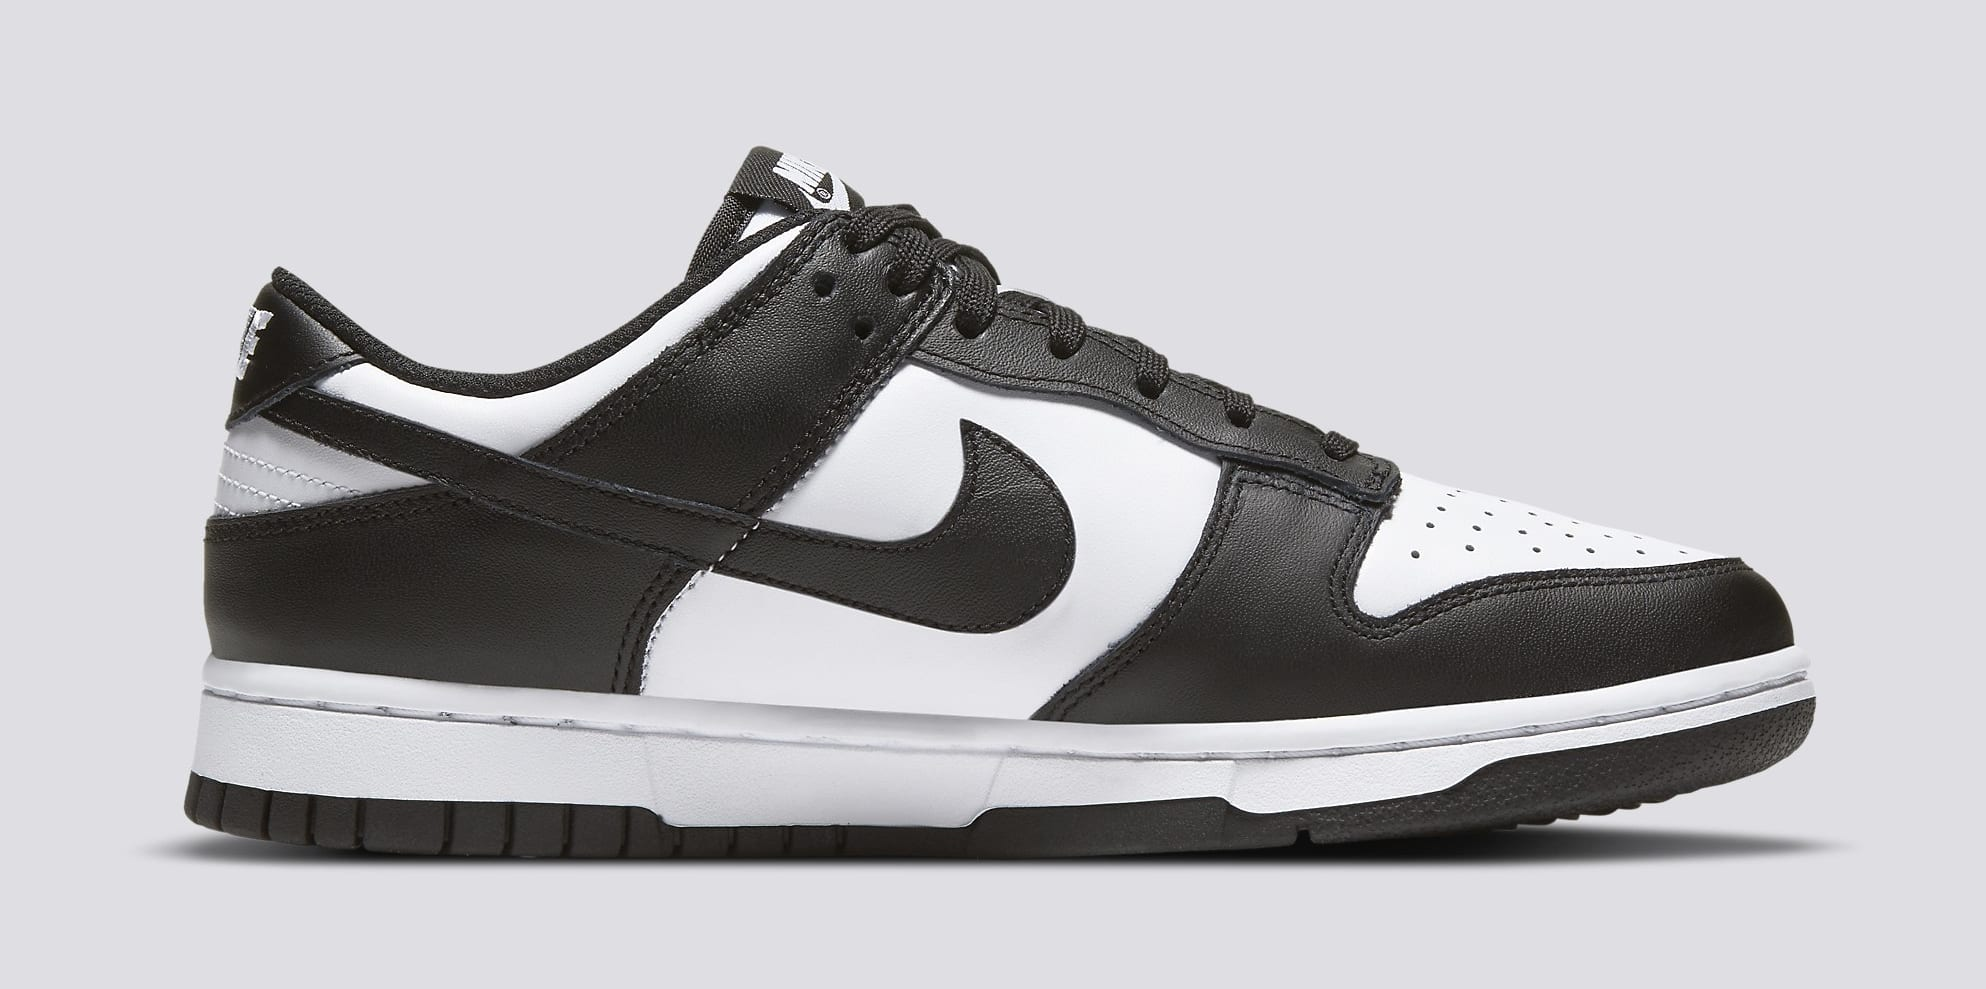 Nike Dunk Low 'Black/White' DD1503-101 Medial